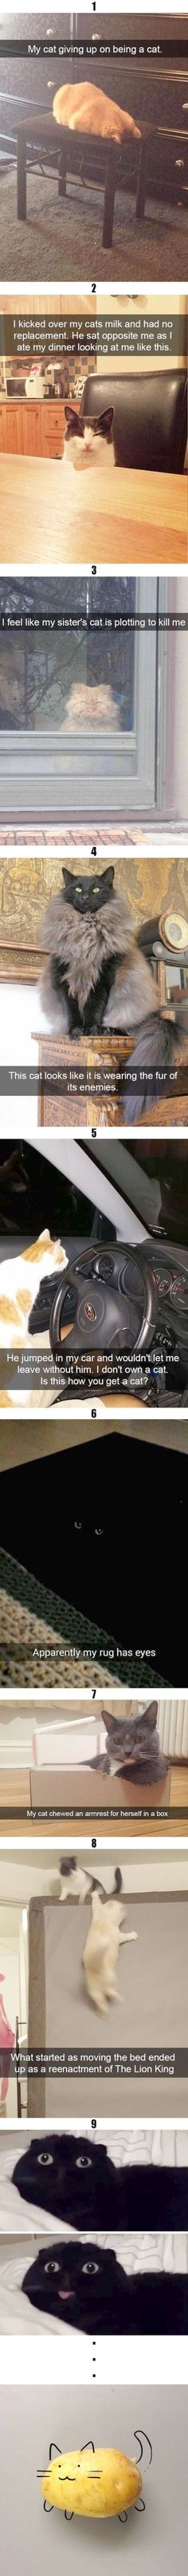 35 Funny cat memes with pictures that feature funny captions and remarks supplied by humans. Scanning for a laugh? Get a looks at these funny cat memes that deal among all kinds of funny topics. Funny Animal Jokes, Funny Cat Memes, Funny Animal Pictures, Cute Funny Animals, Animal Memes, Cute Baby Animals, Funny Cute, Cute Cats, Hilarious